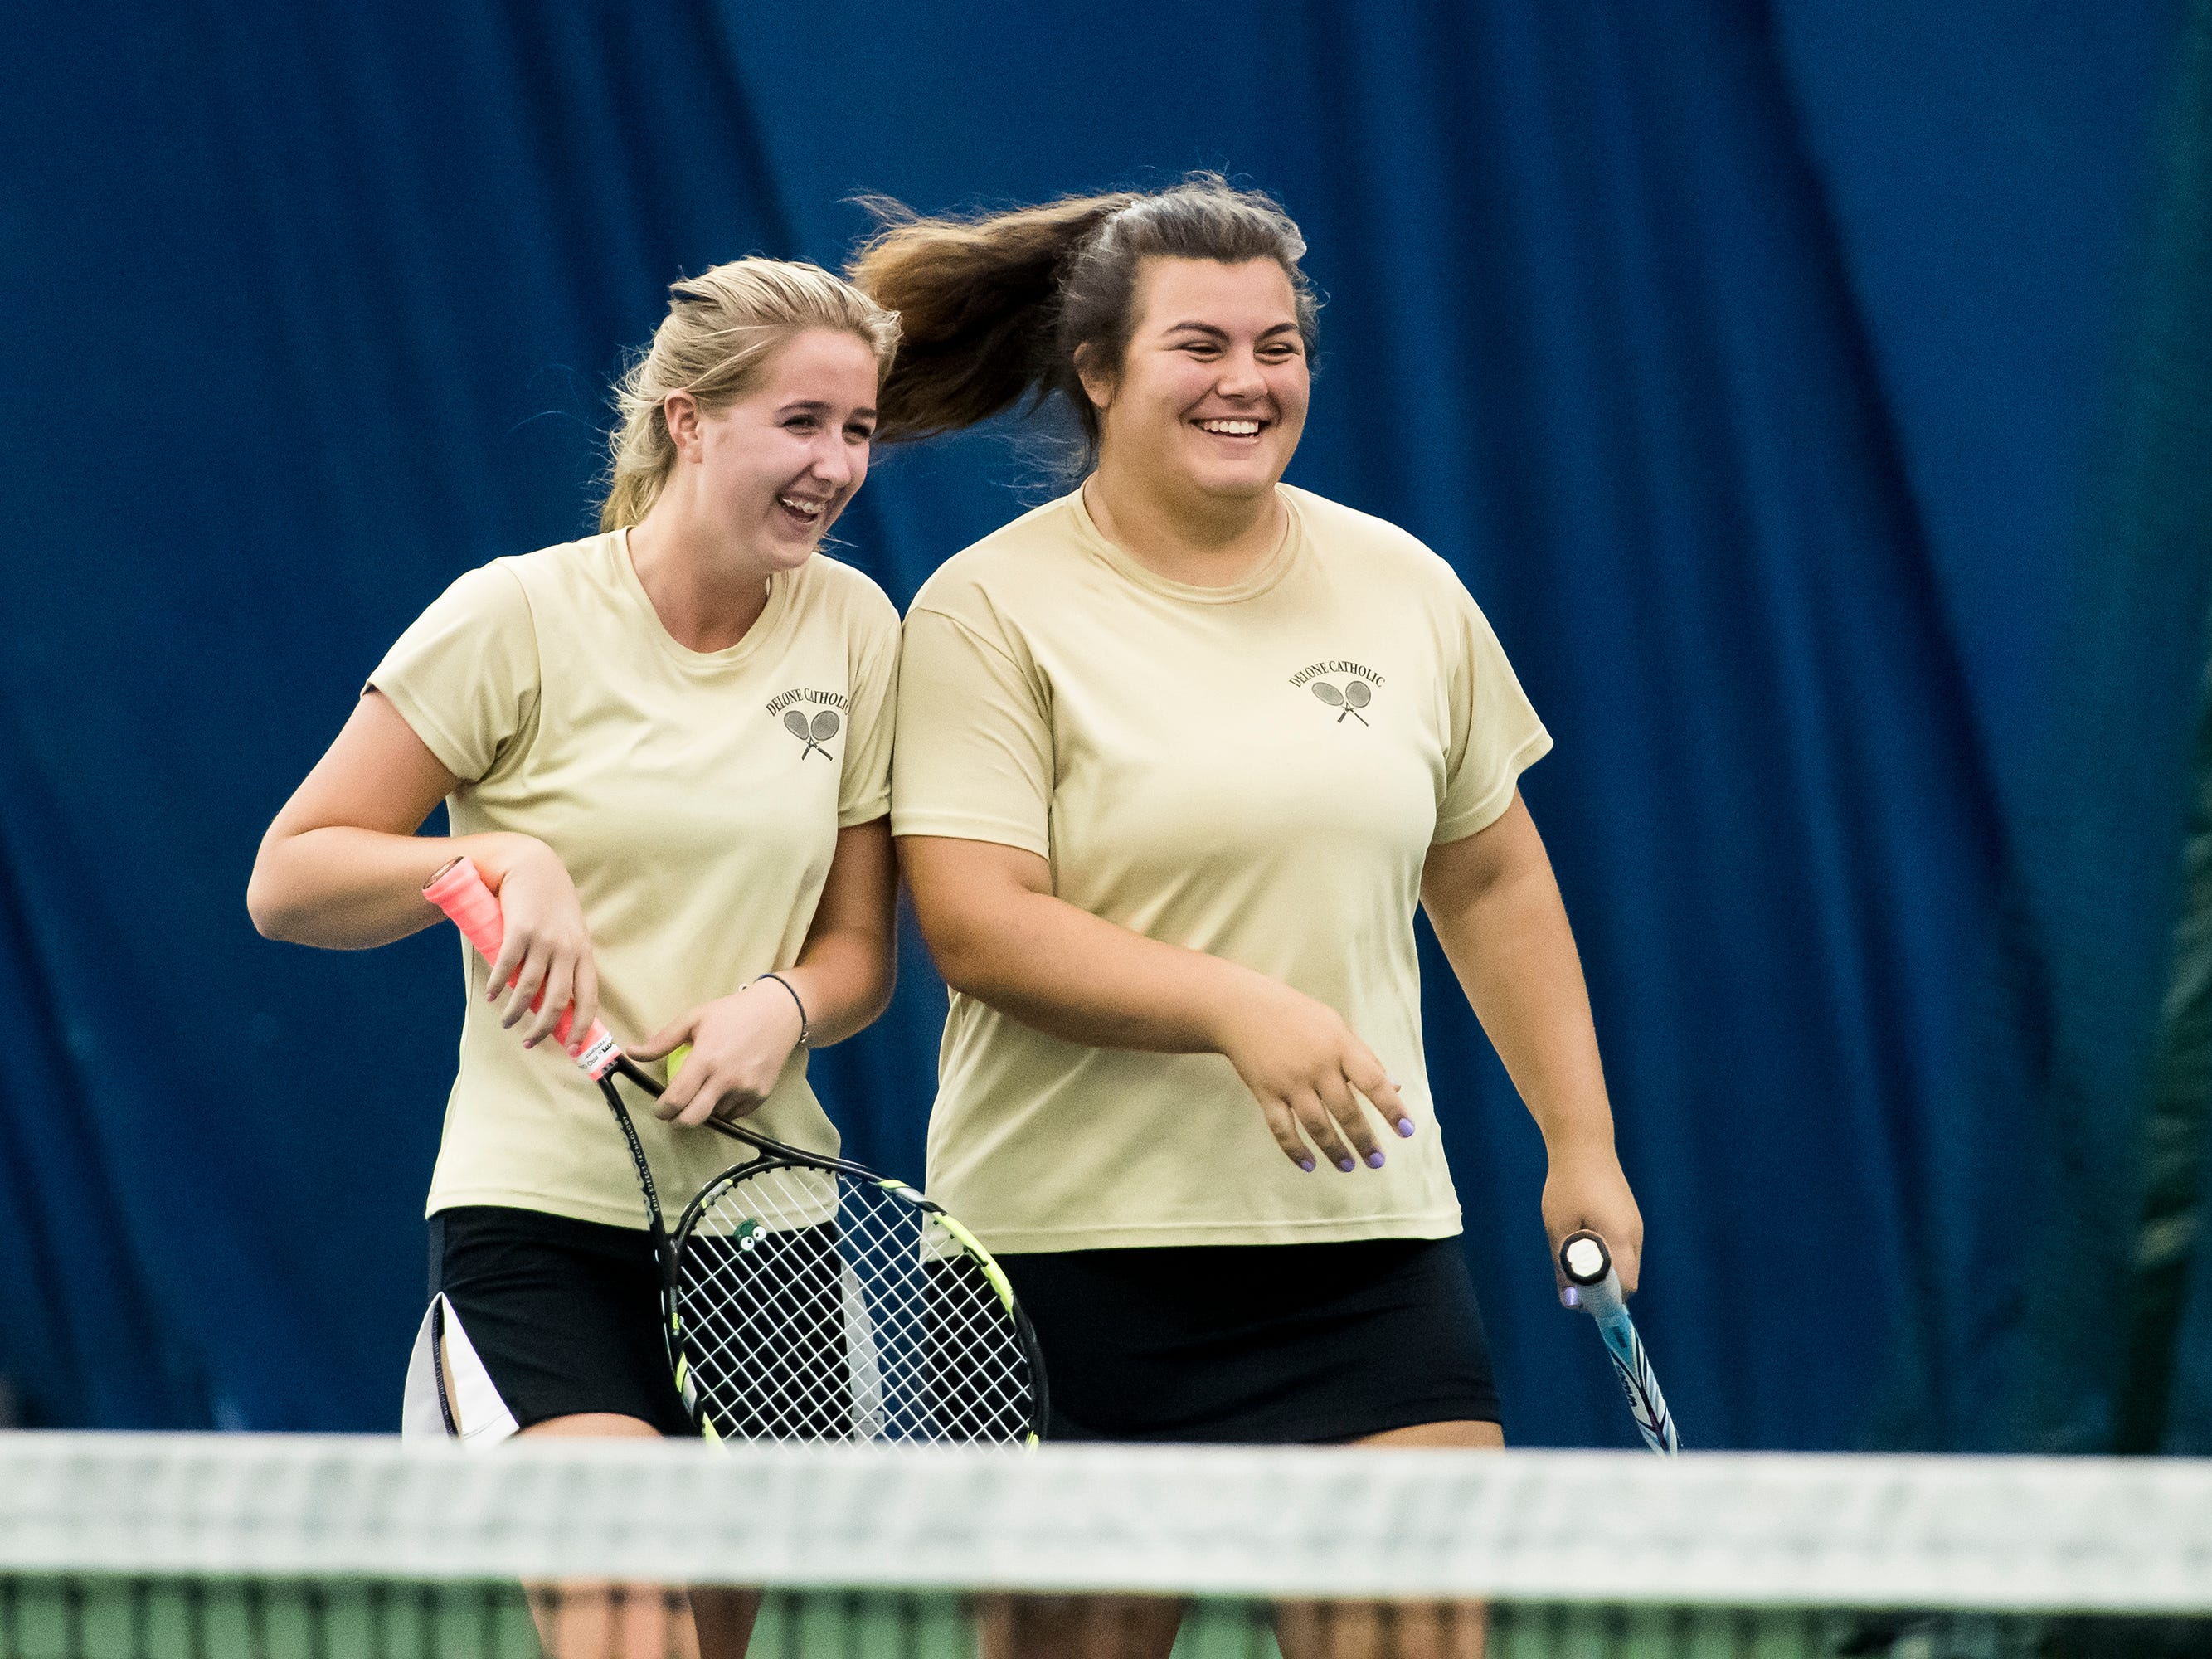 Delone Catholic tennis players Ellie Neudecker, left, and Becca Dolce laugh together after facing off in the YAIAA 2A singles championship match at Wisehaven Tennis Center in York on October 6, 2018. Neudecker won 6-0, 6-1.